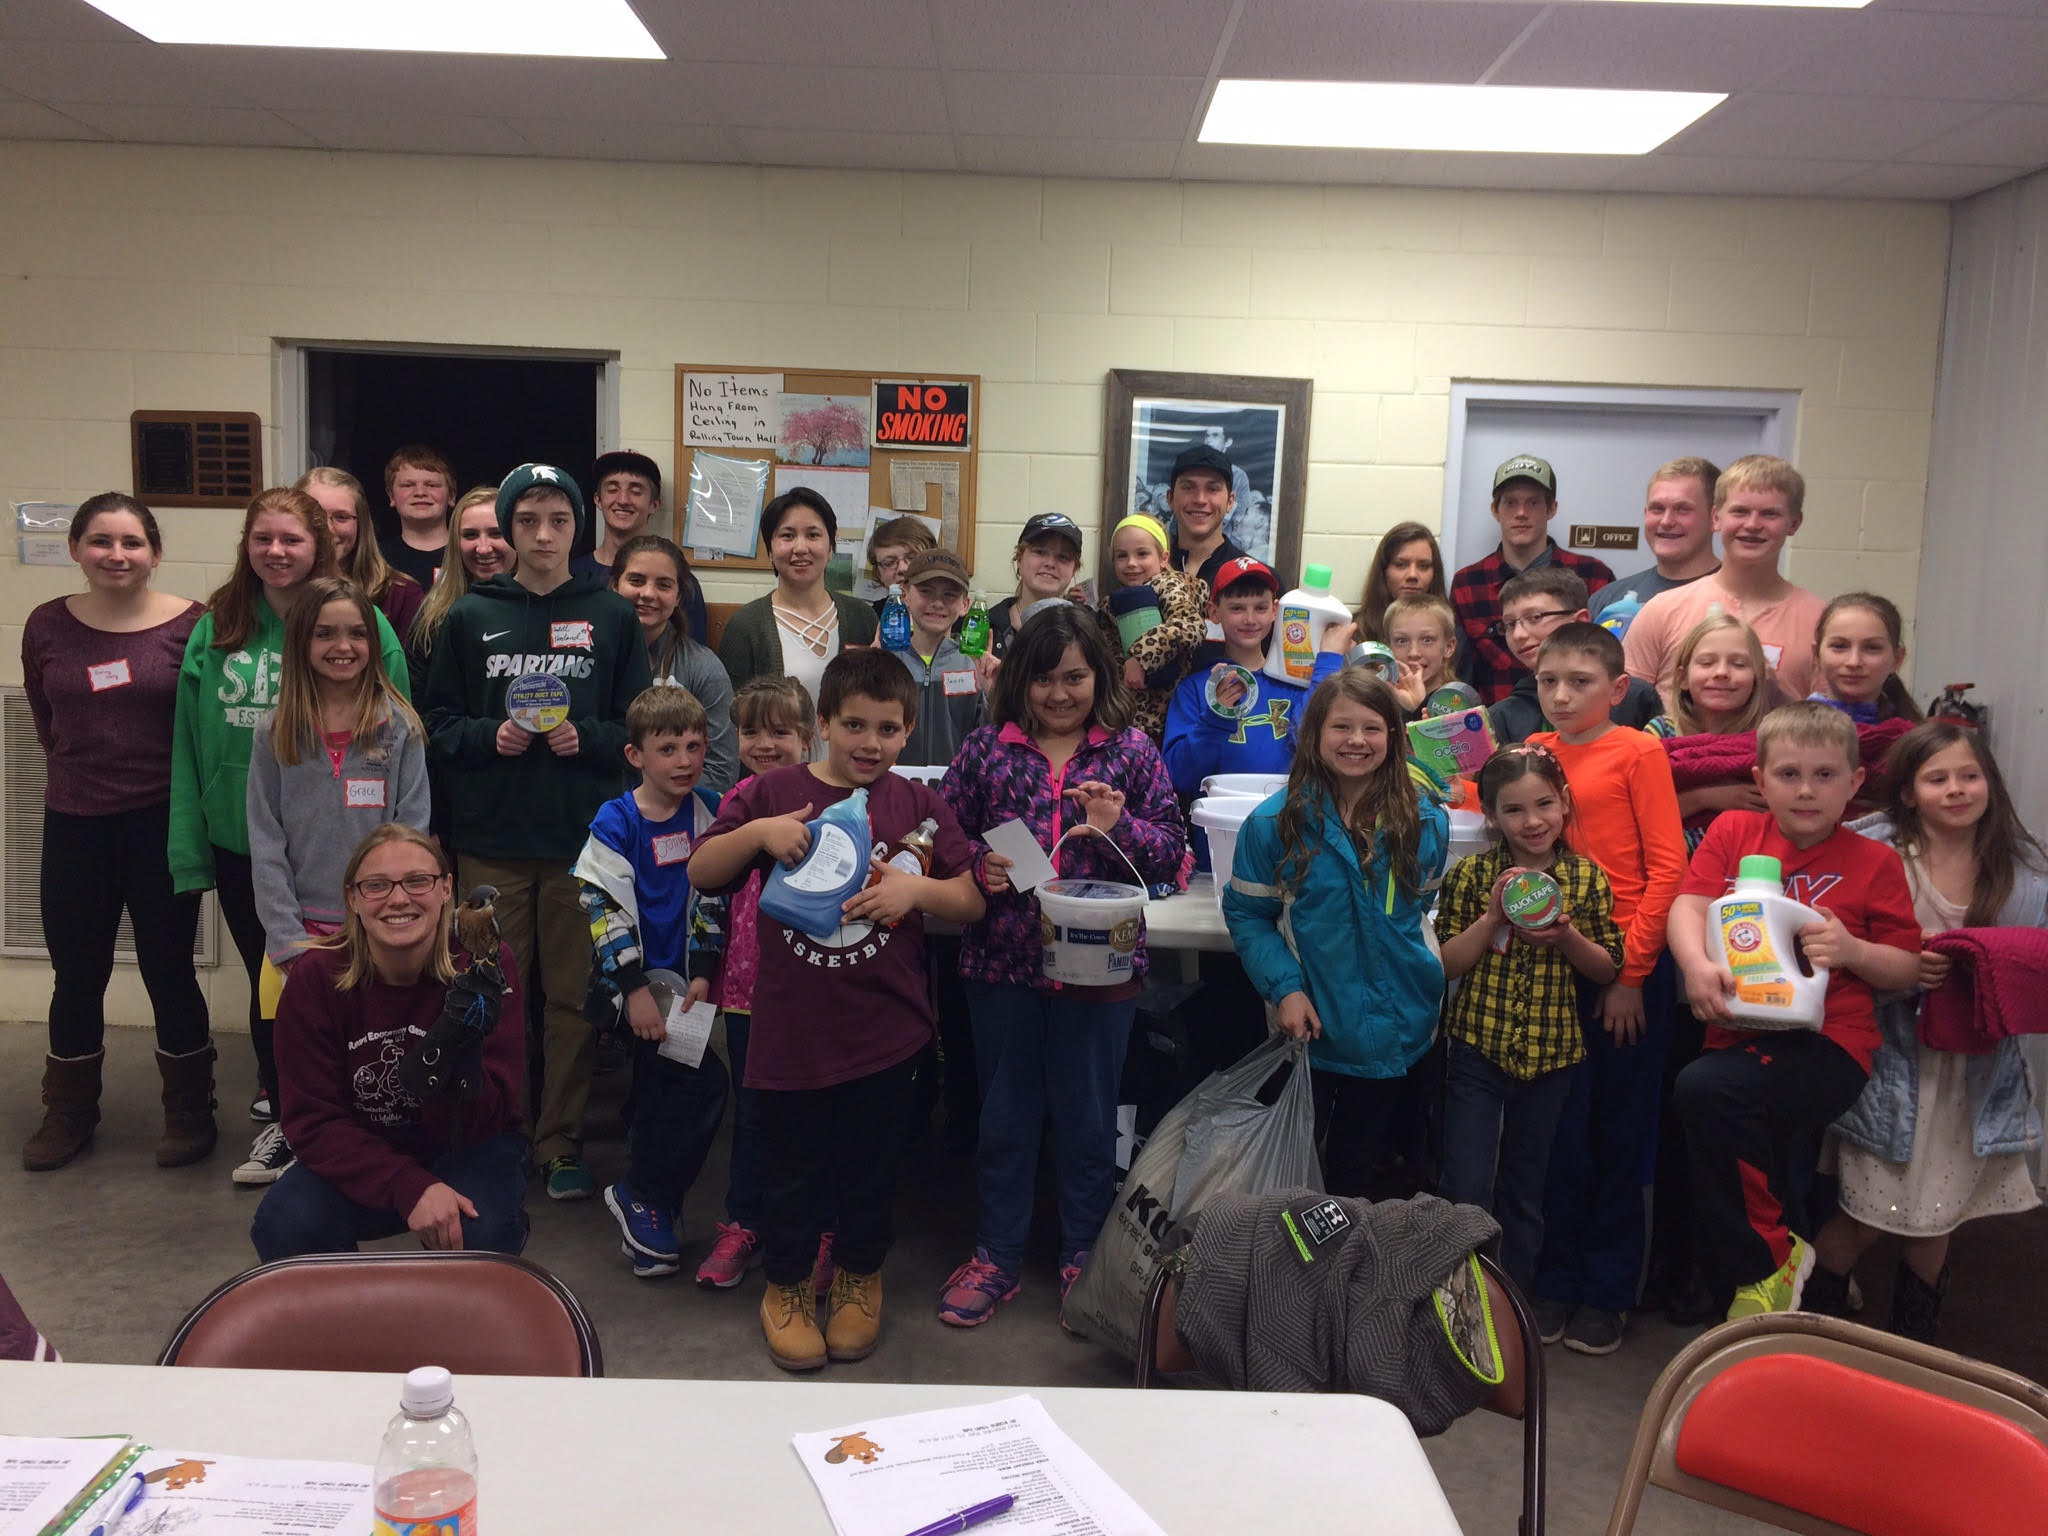 The Antigo 4-H donated supplies to REGI at one of their April 2017 meetings. The group poses with Director of Education, Elise, and Benji the American Kestrel.